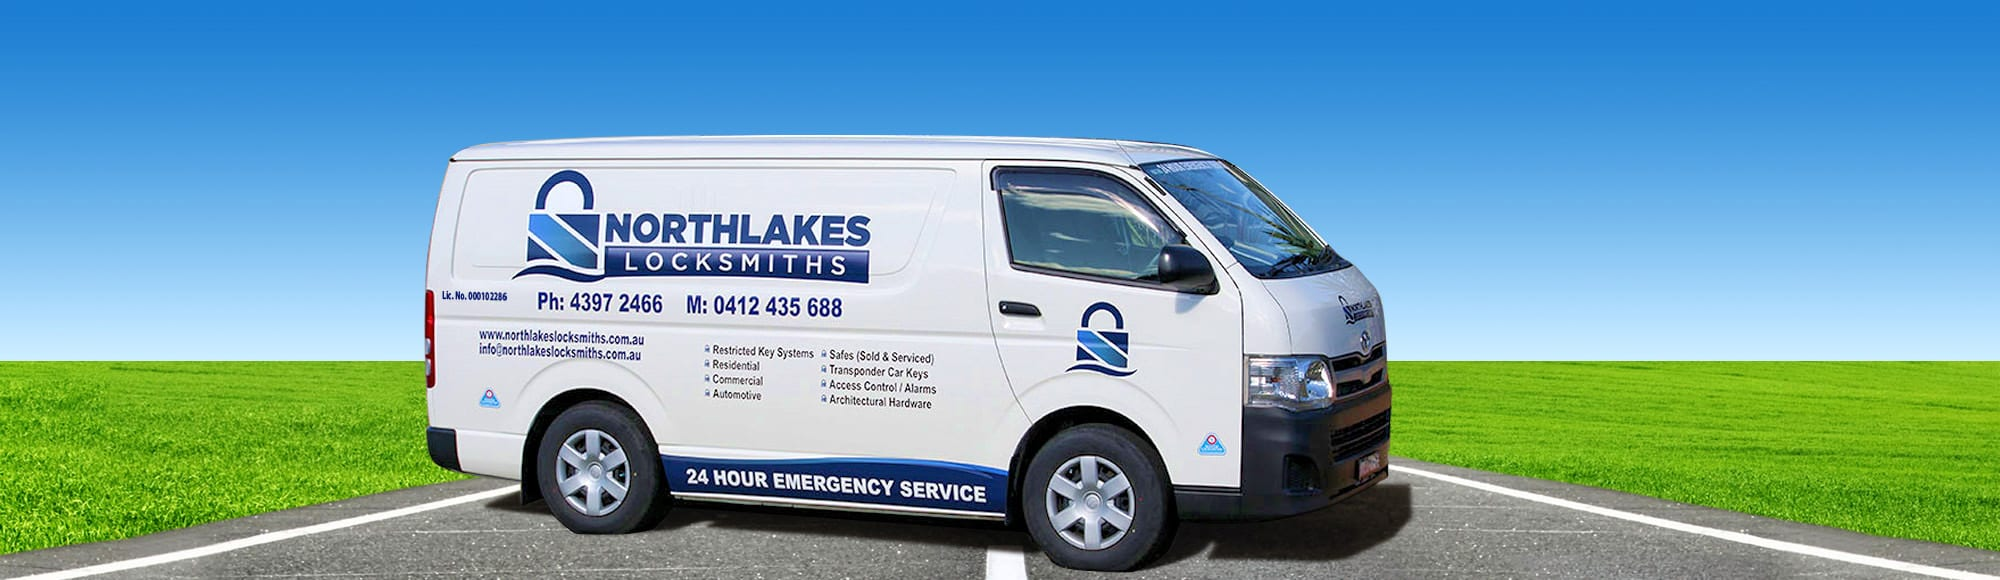 Contact Northlakes Locksmiths TOUKLEY NSW 2263.